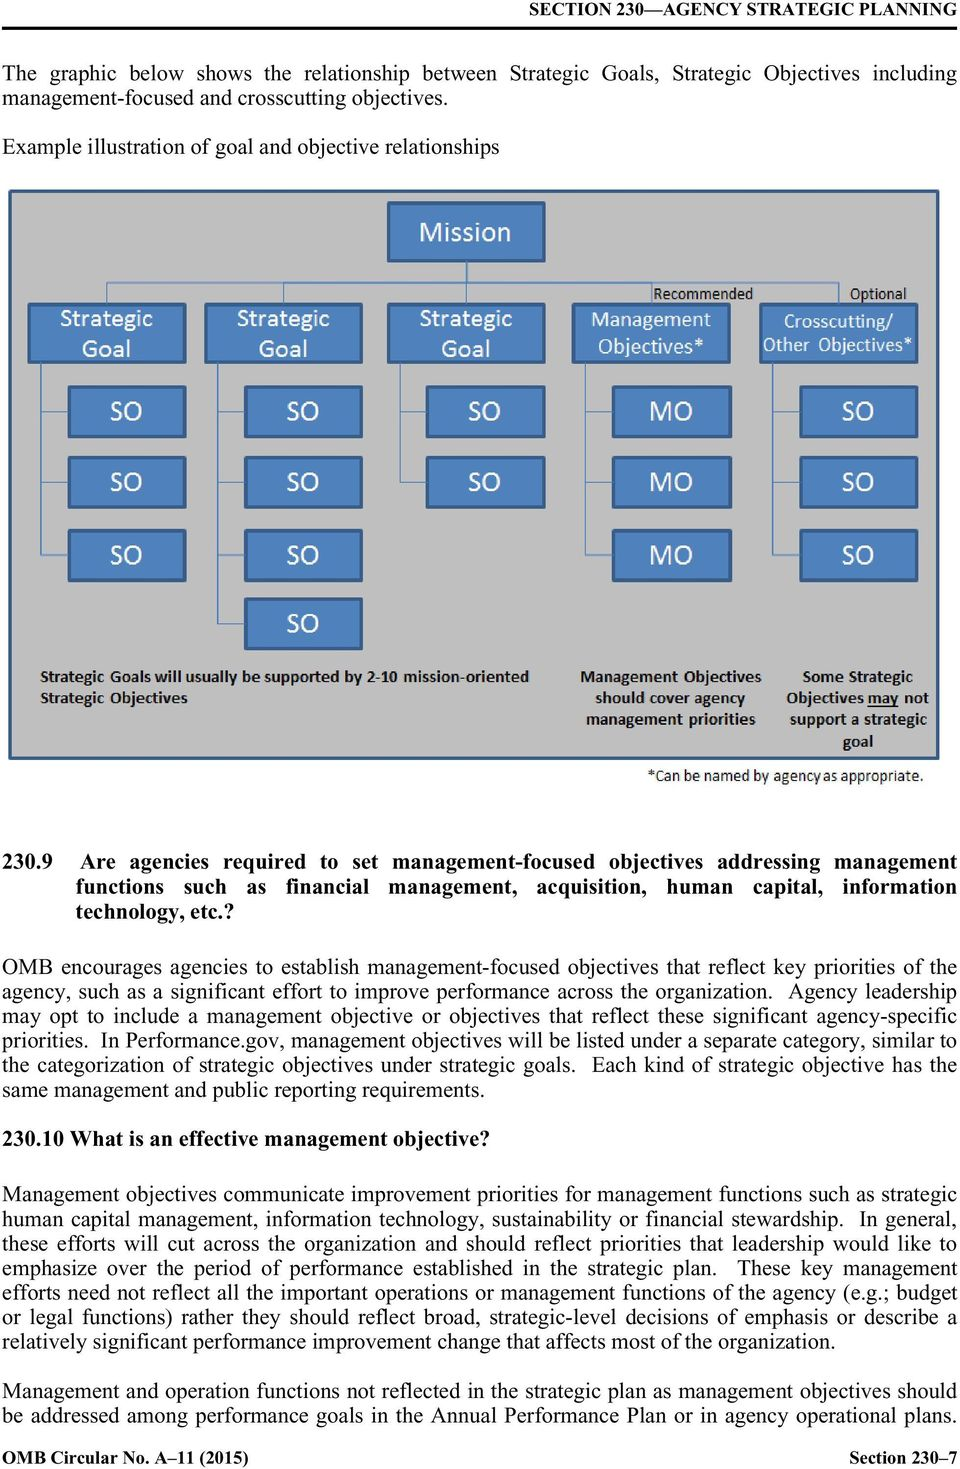 9 Are agencies required to set management-focused objectives addressing management functions such as financial management, acquisition, human capital, information technology, etc.